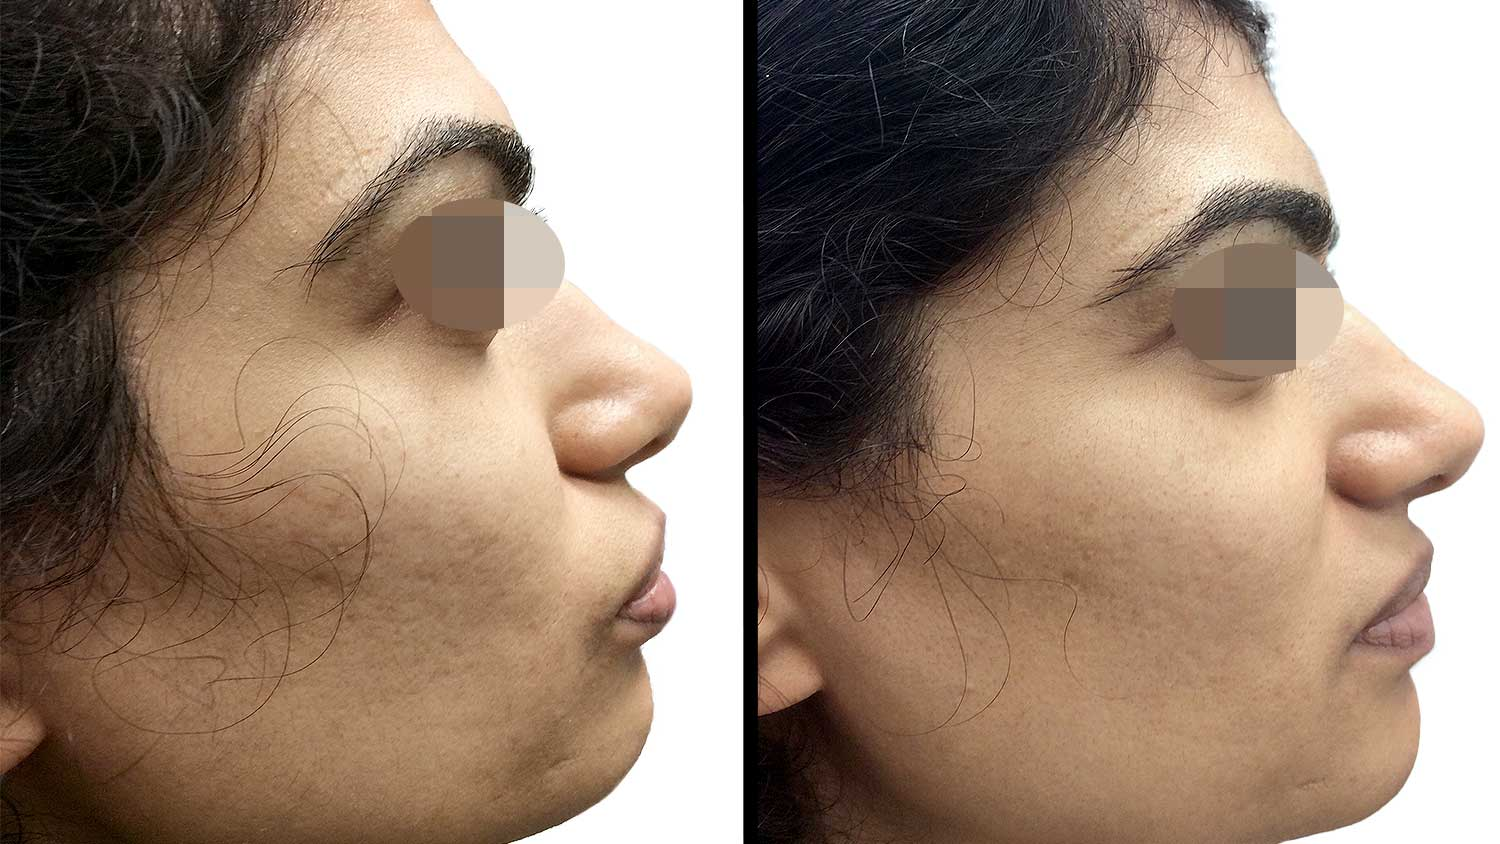 Microneedling with PRP for Acne Scarring with Dr. Rachel Pritzker